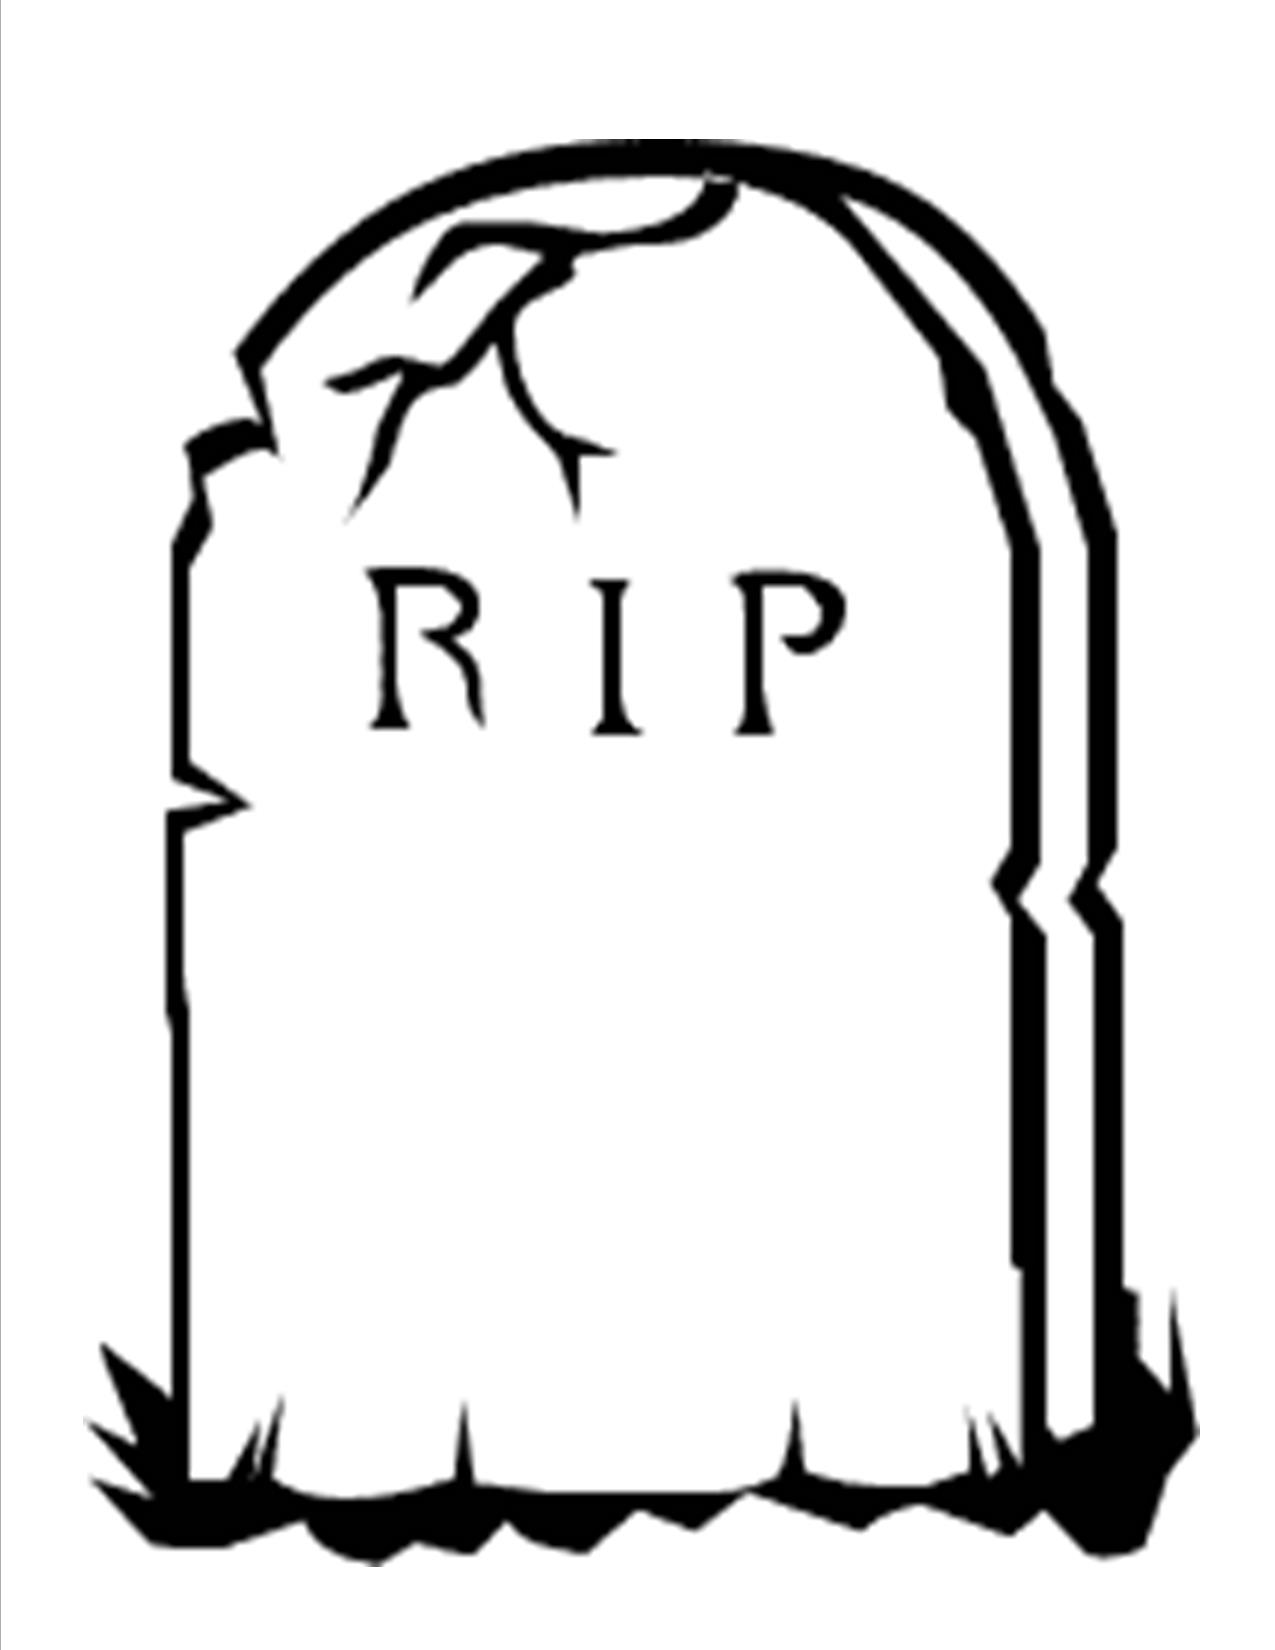 Grave clipart tomb. Tombstone free cartoon flower